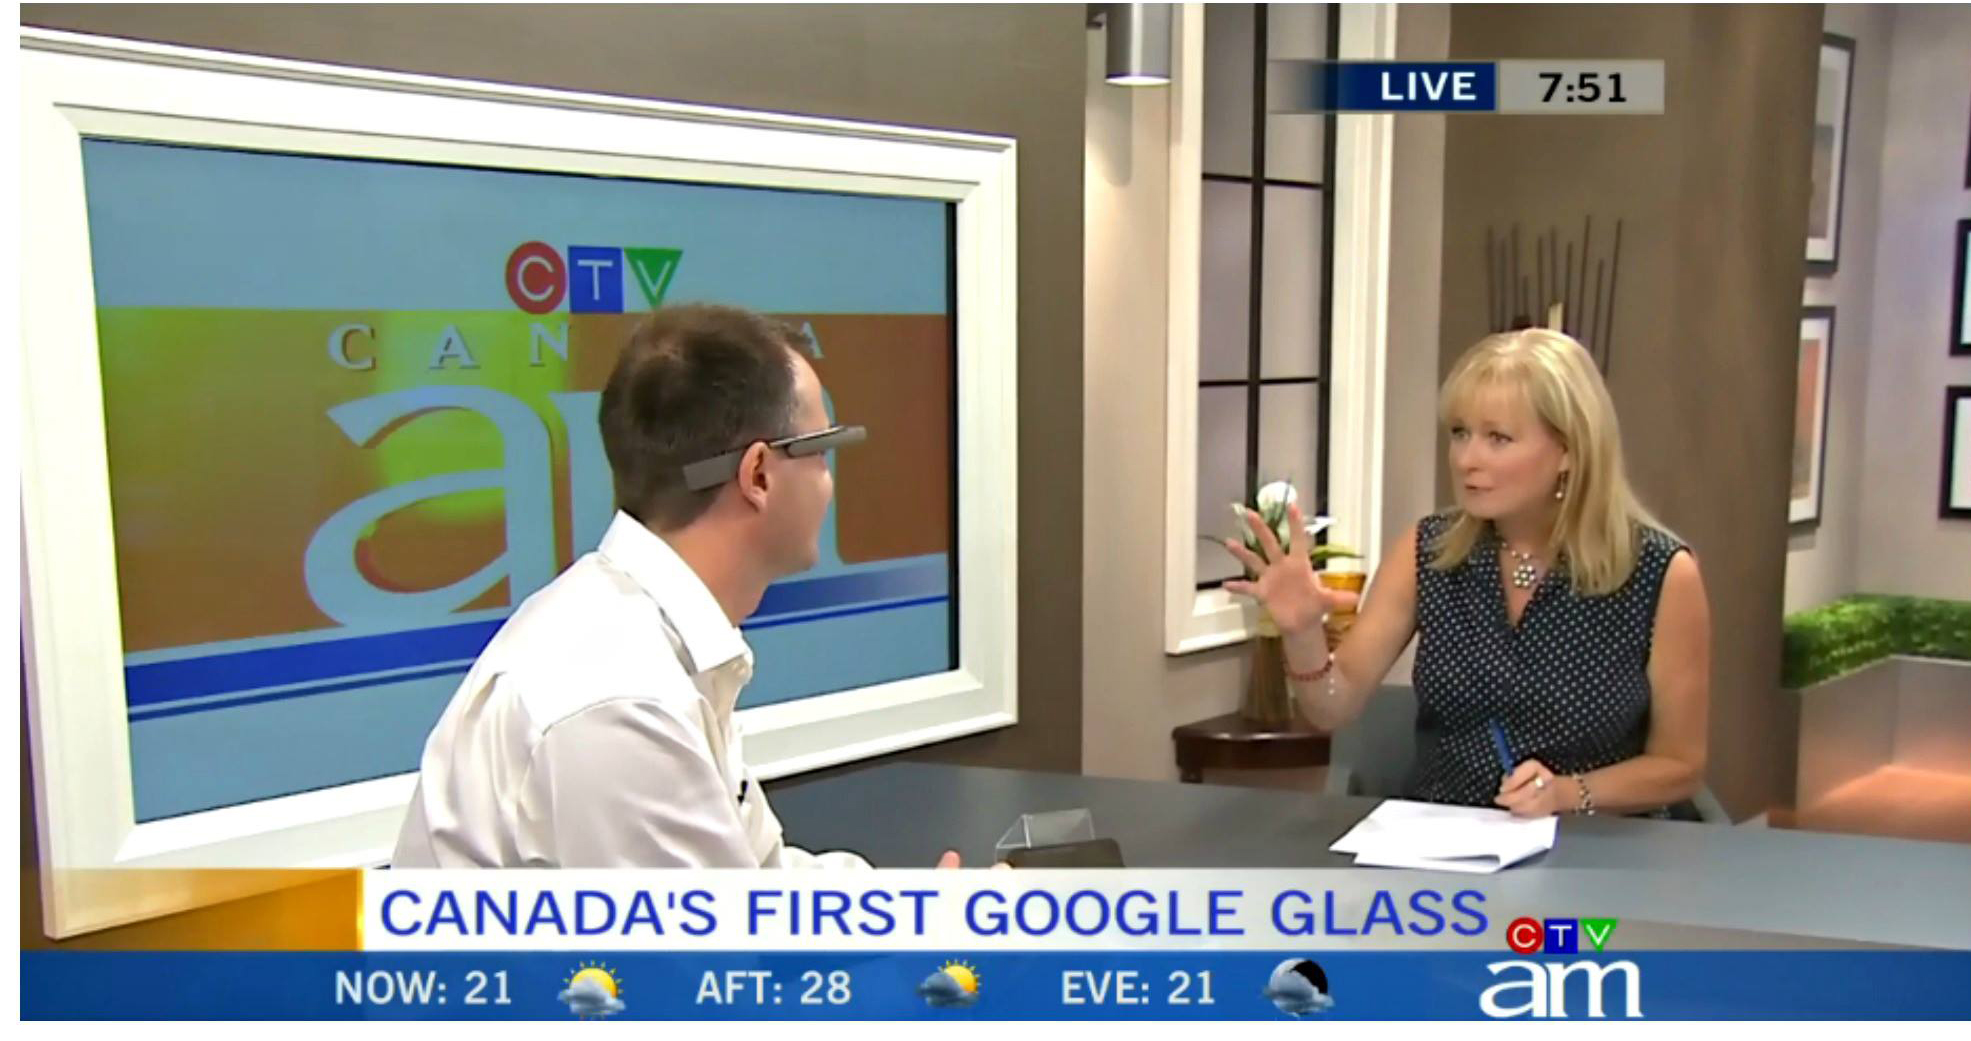 Canada's first Google Glass Explorer David Ciccarelli with Canada AM Host, Beverly Thomson. July 8, 2013.